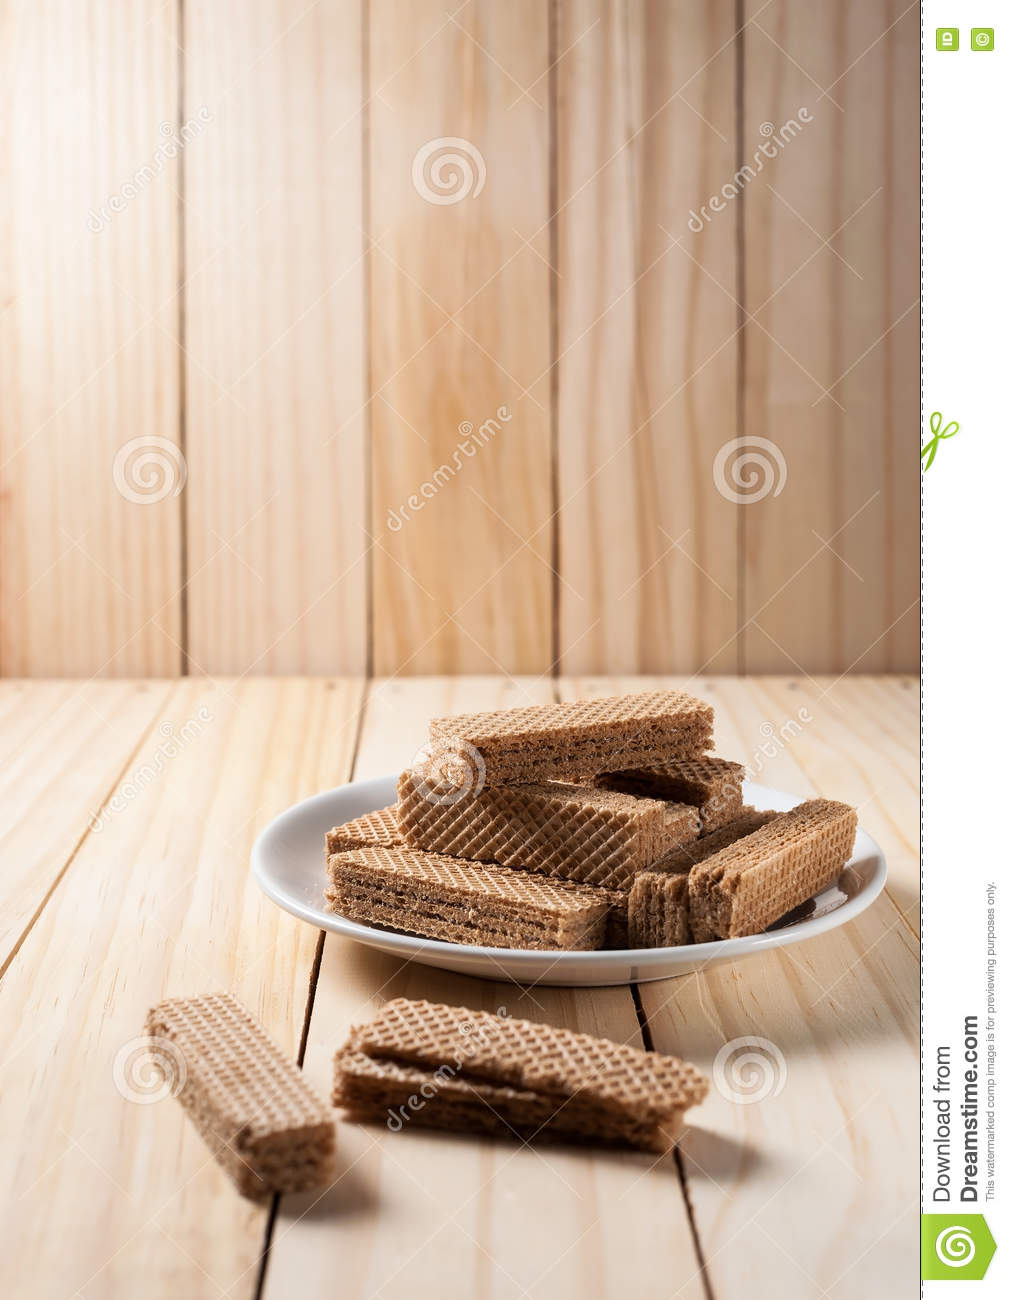 Wafers with chocolate in white plate